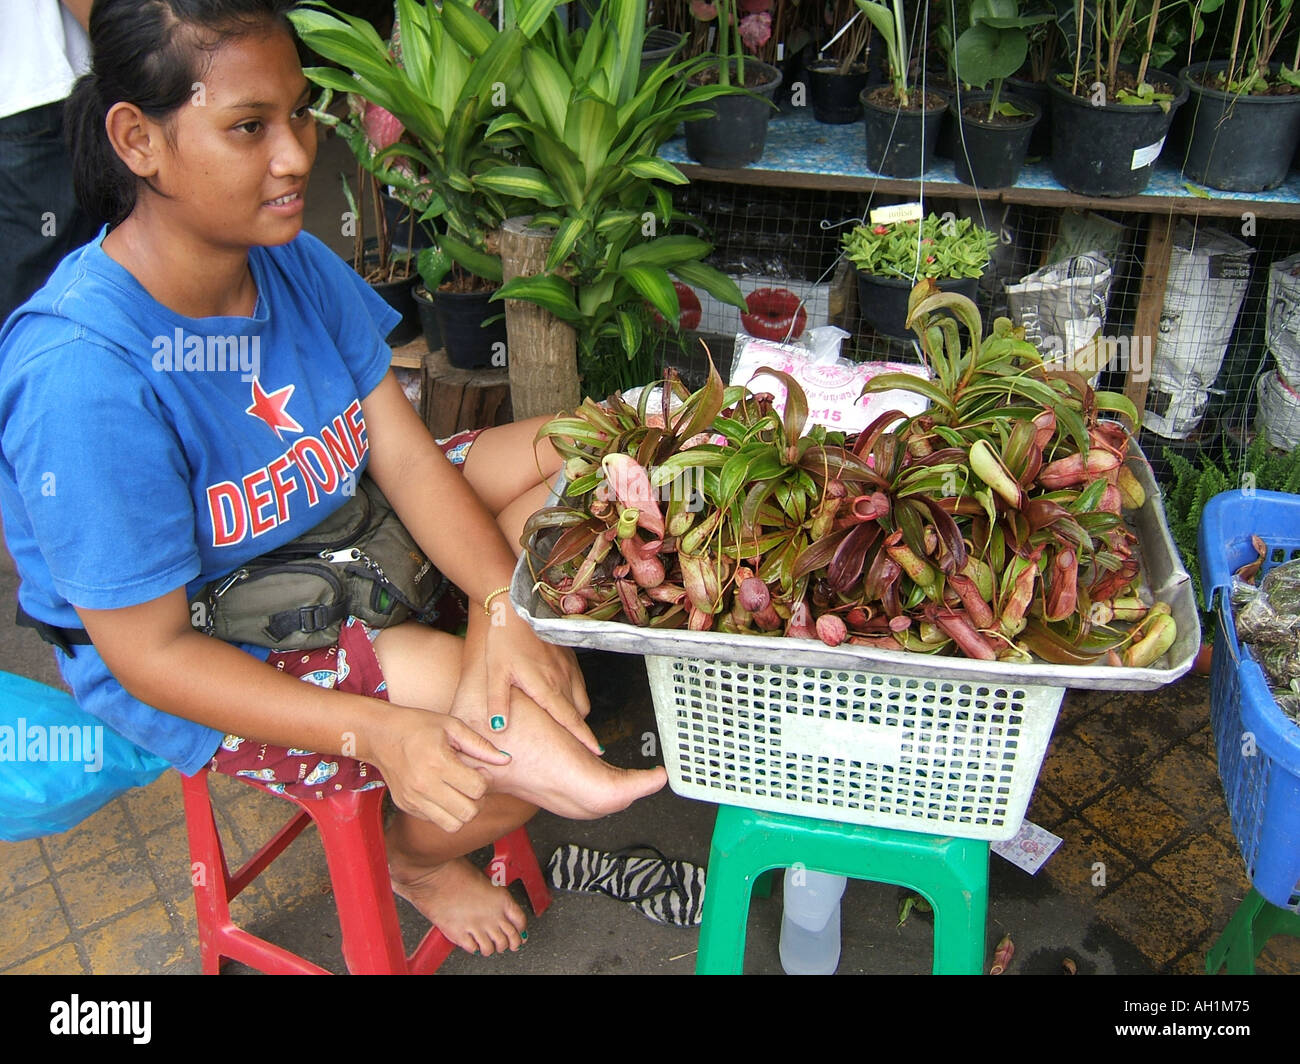 Asian Plants For Sale Pitcher Plants For Sale In The Chatuchak Market Thailand Asia